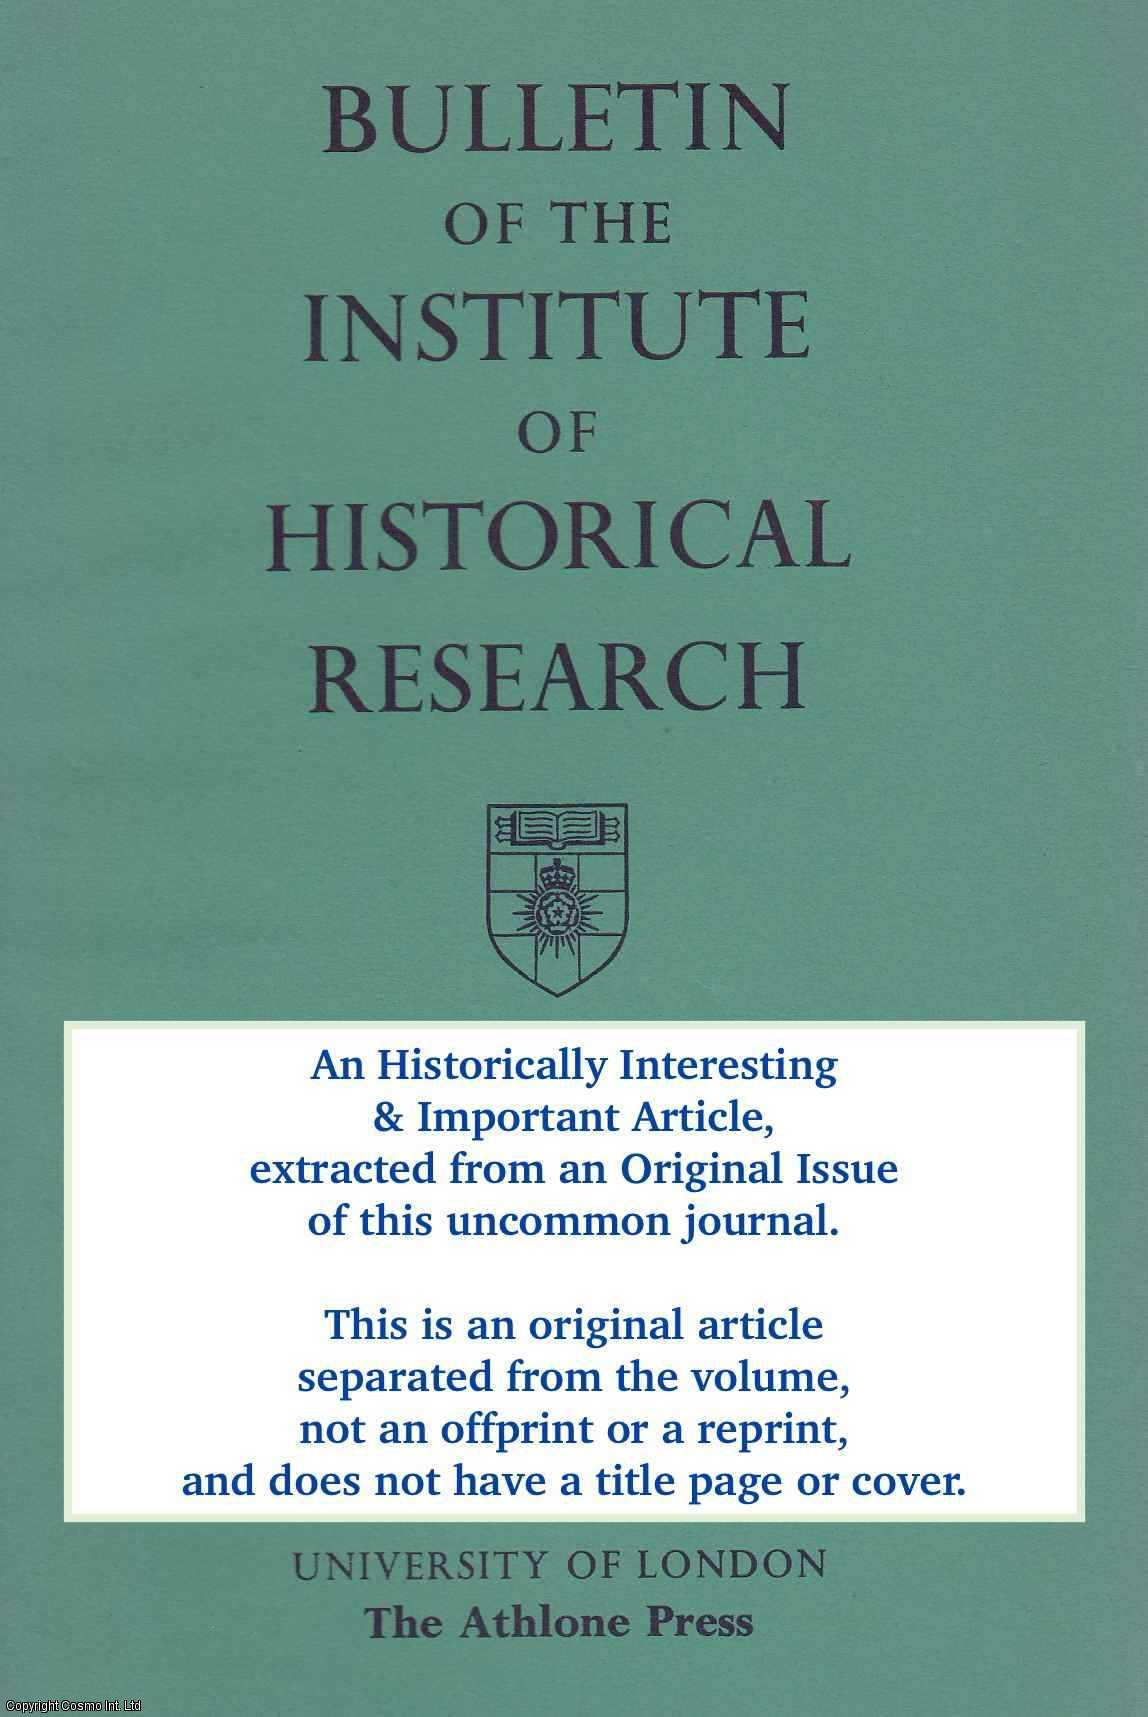 COPE, ESTHER S. - John Rushworth and The Short Parliament of 1640. An original article from the Bulletin of The Institute of Historical Research 1978.